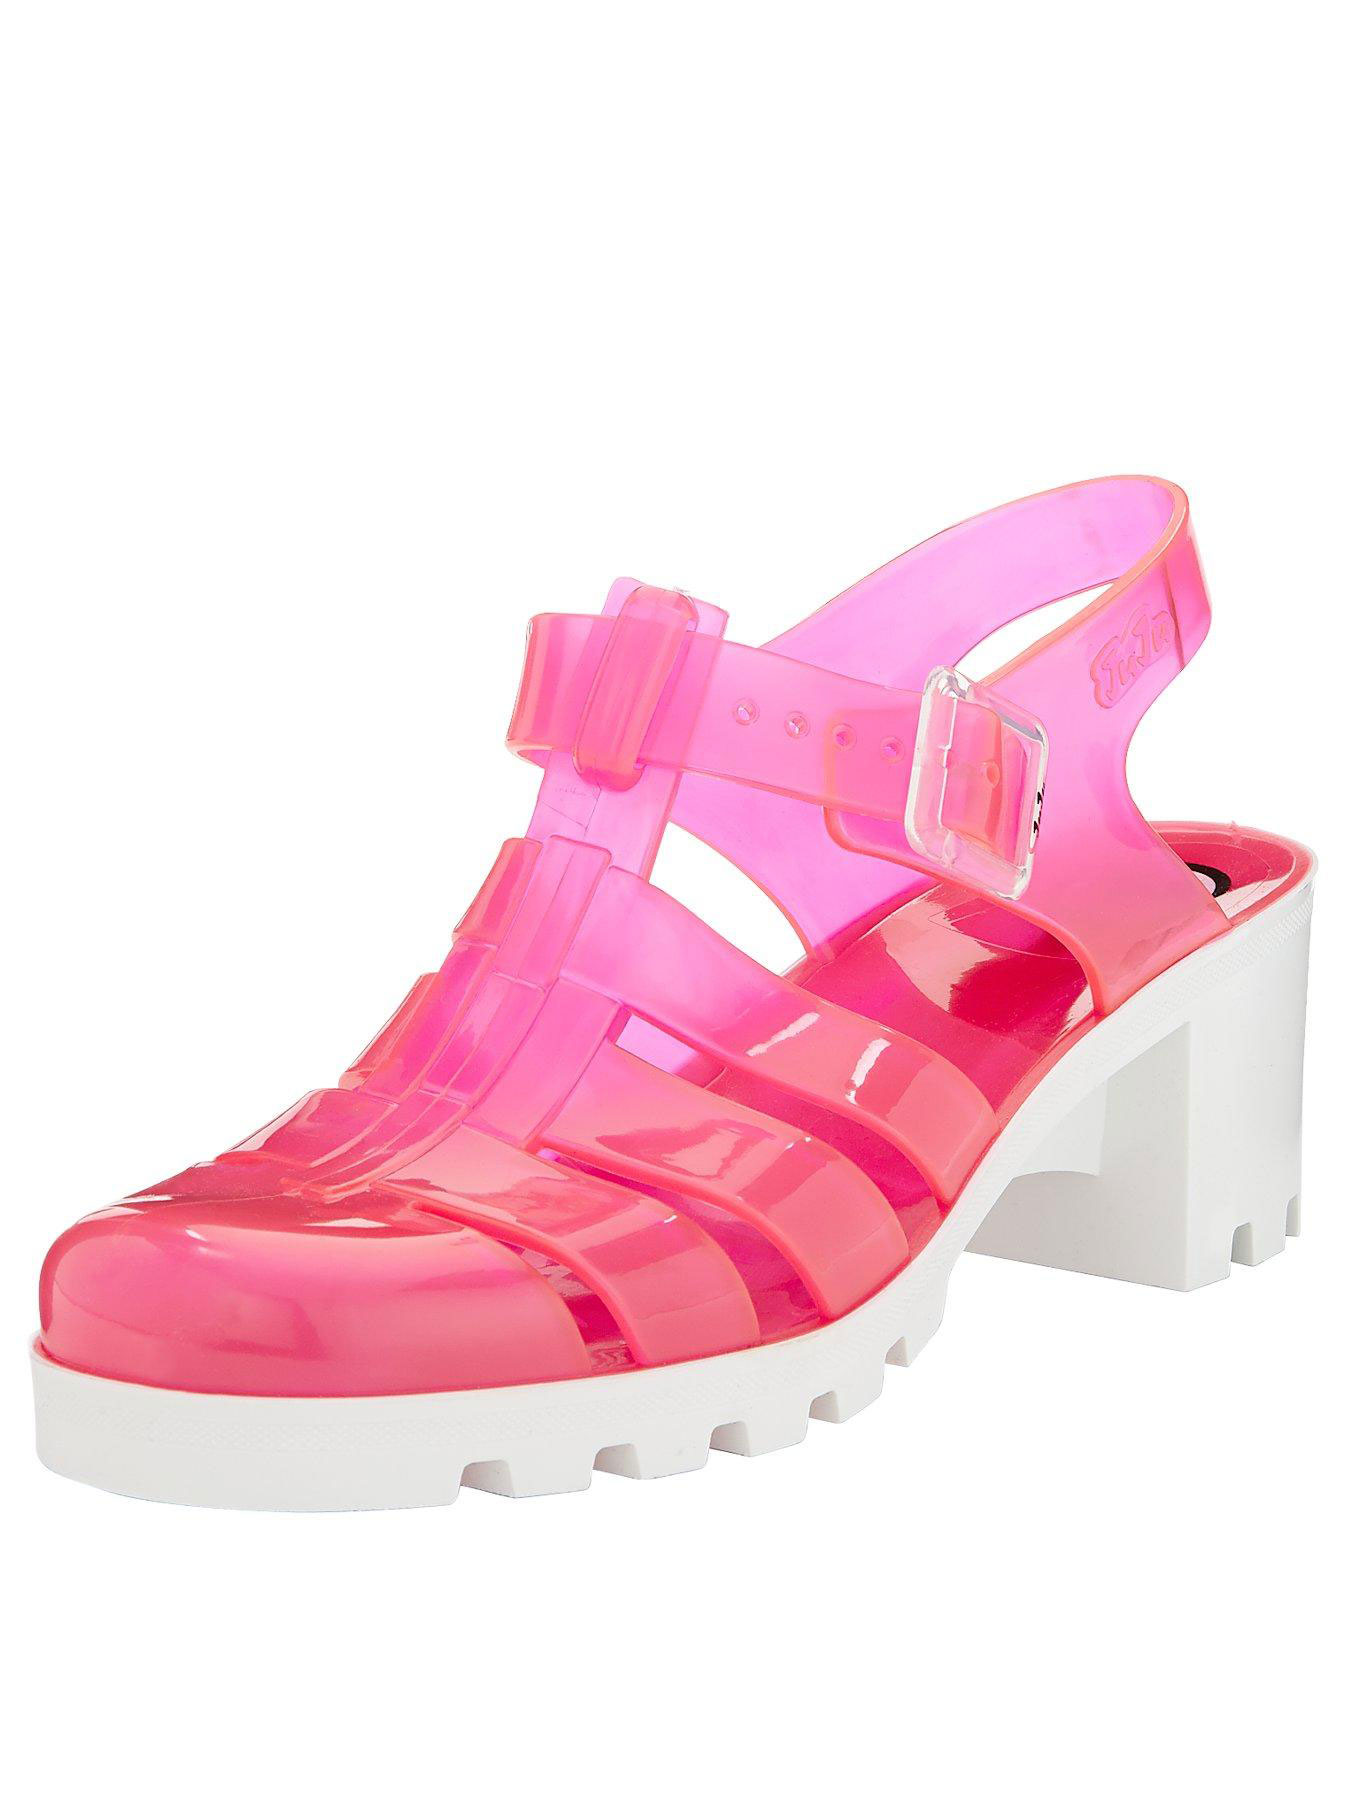 JuJu Babe Two Tone Jelly Sandals